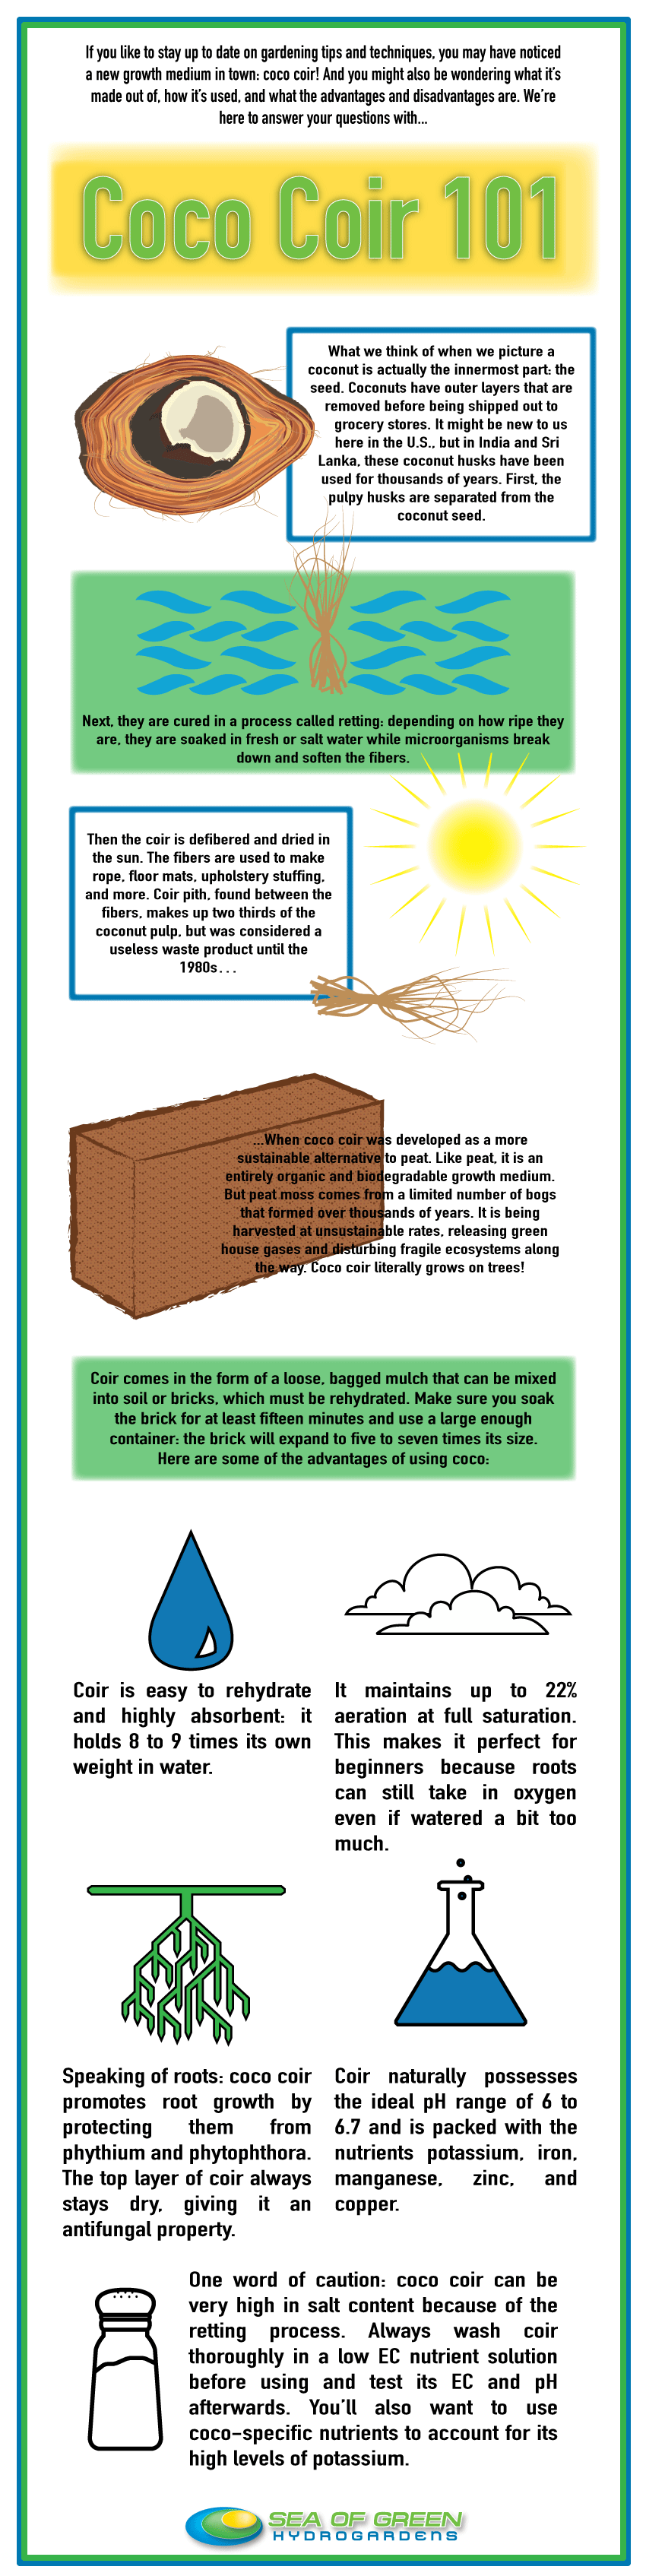 Coco Coir Infographic